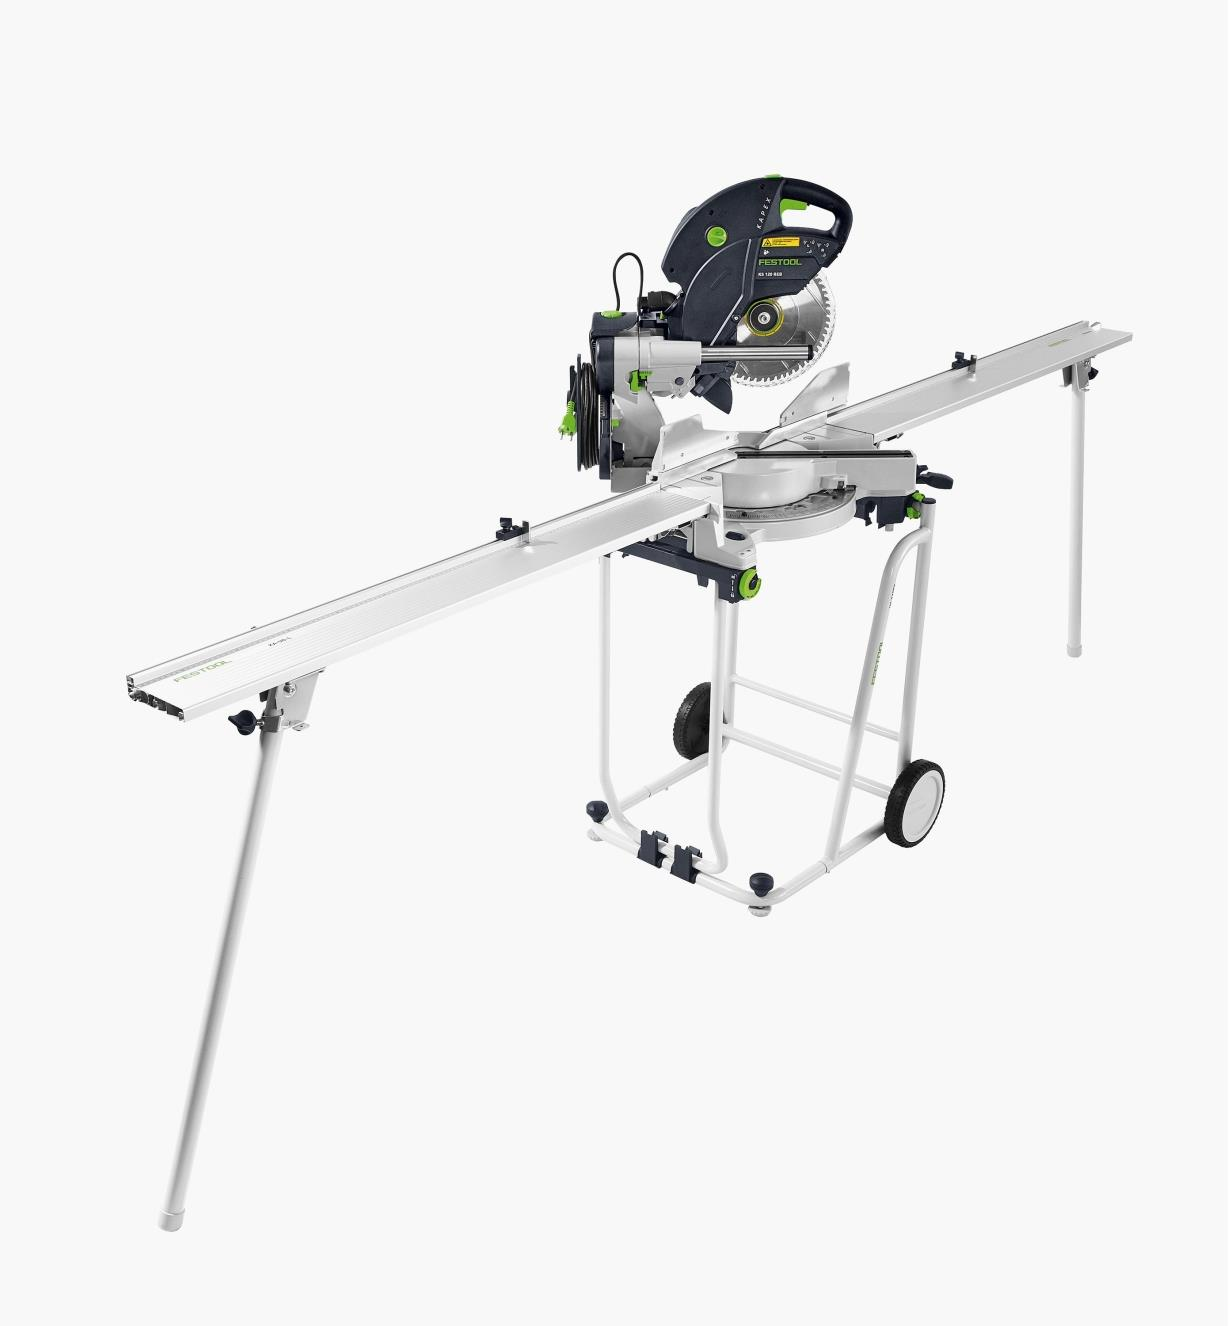 A Kapex miter saw sitting on the mobile cutting station